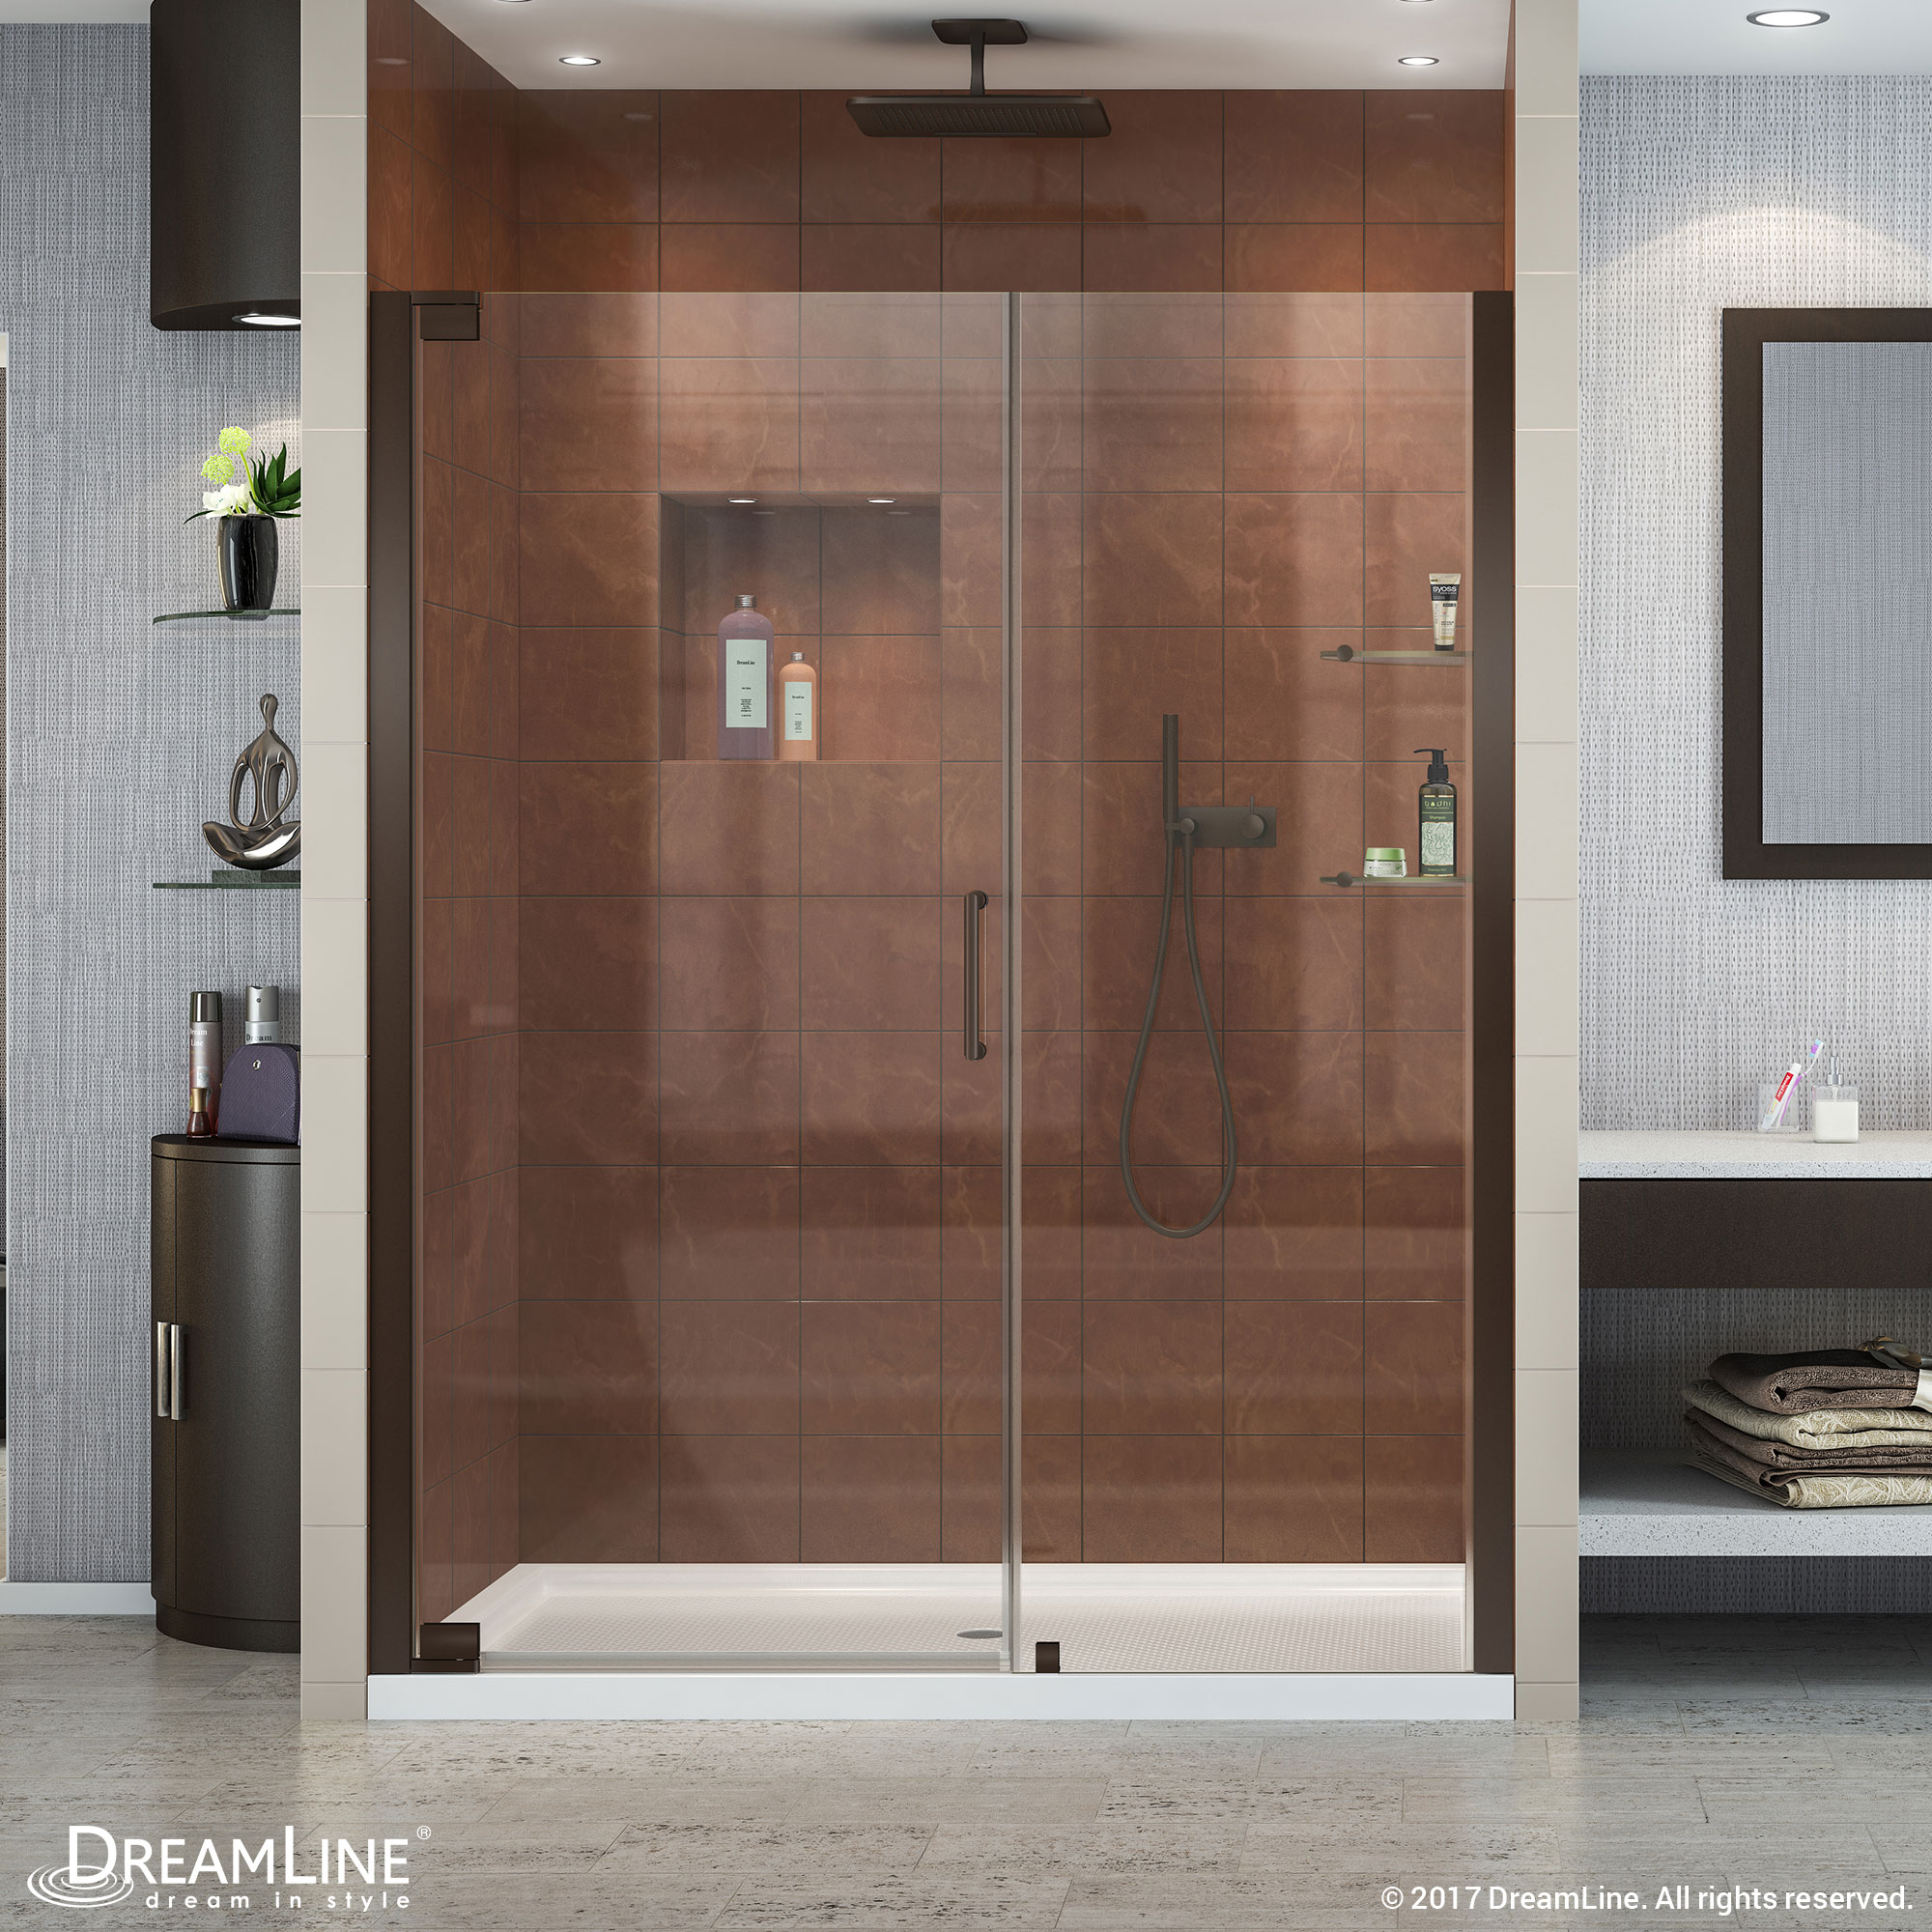 "Elegance 58 to 60"" Frameless Pivot Shower Door, Clear 3/8"" Glass Door, Brushed Nickel"